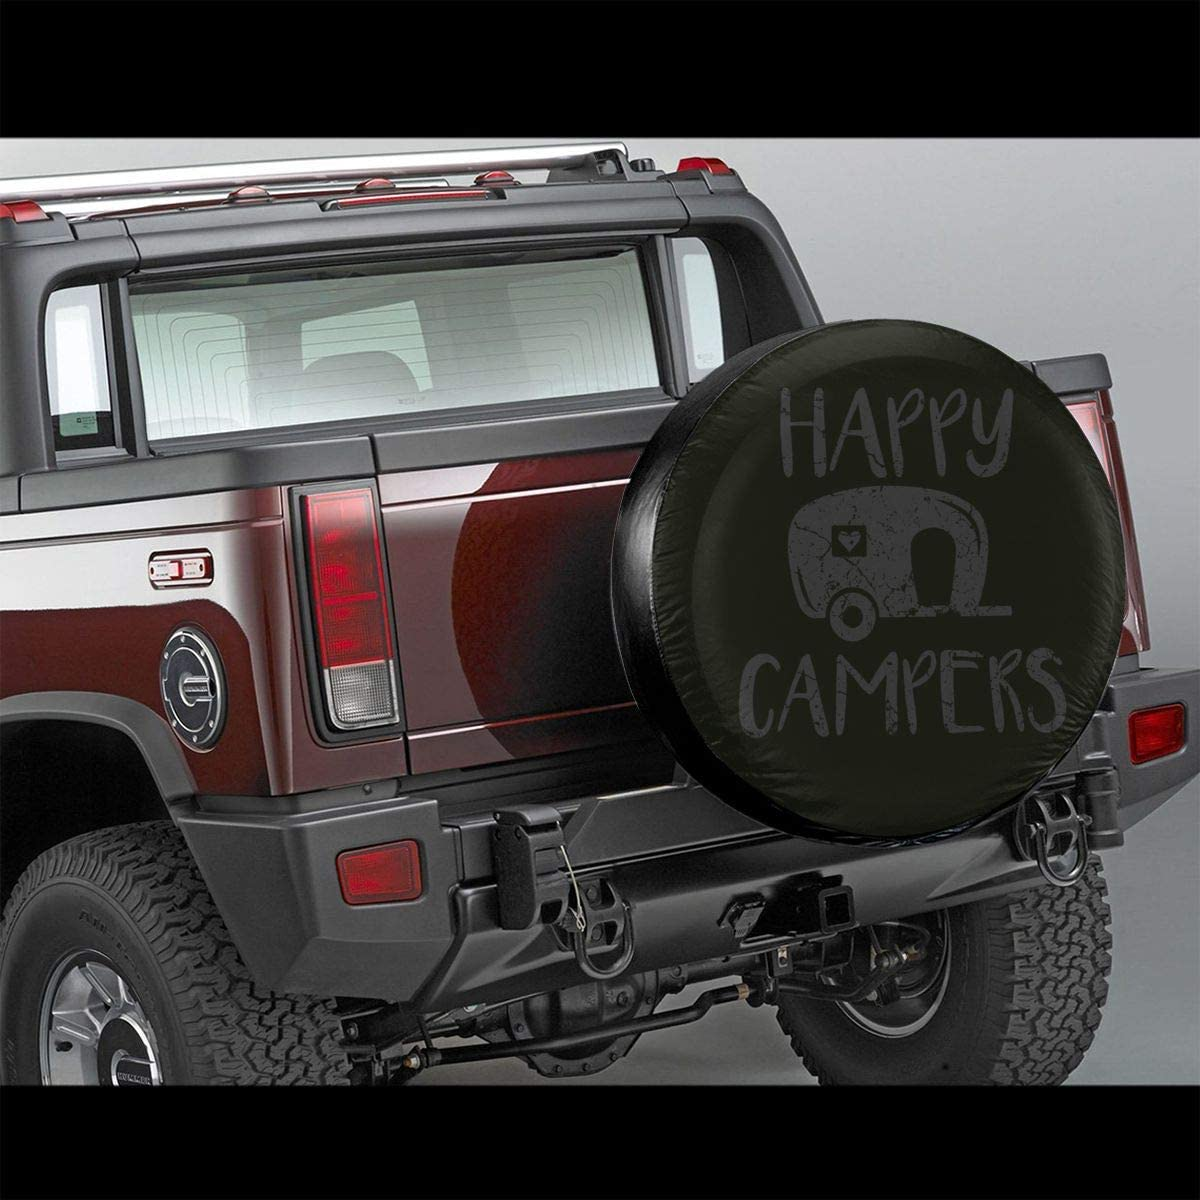 CaLOV Happy Campers Spare Tire Cover Protector Waterproof Dust-Proof Wheel Covers Fit for Jeep Liberty Rv SUV Camper Travel Trailer Accessories 14 15 16 17